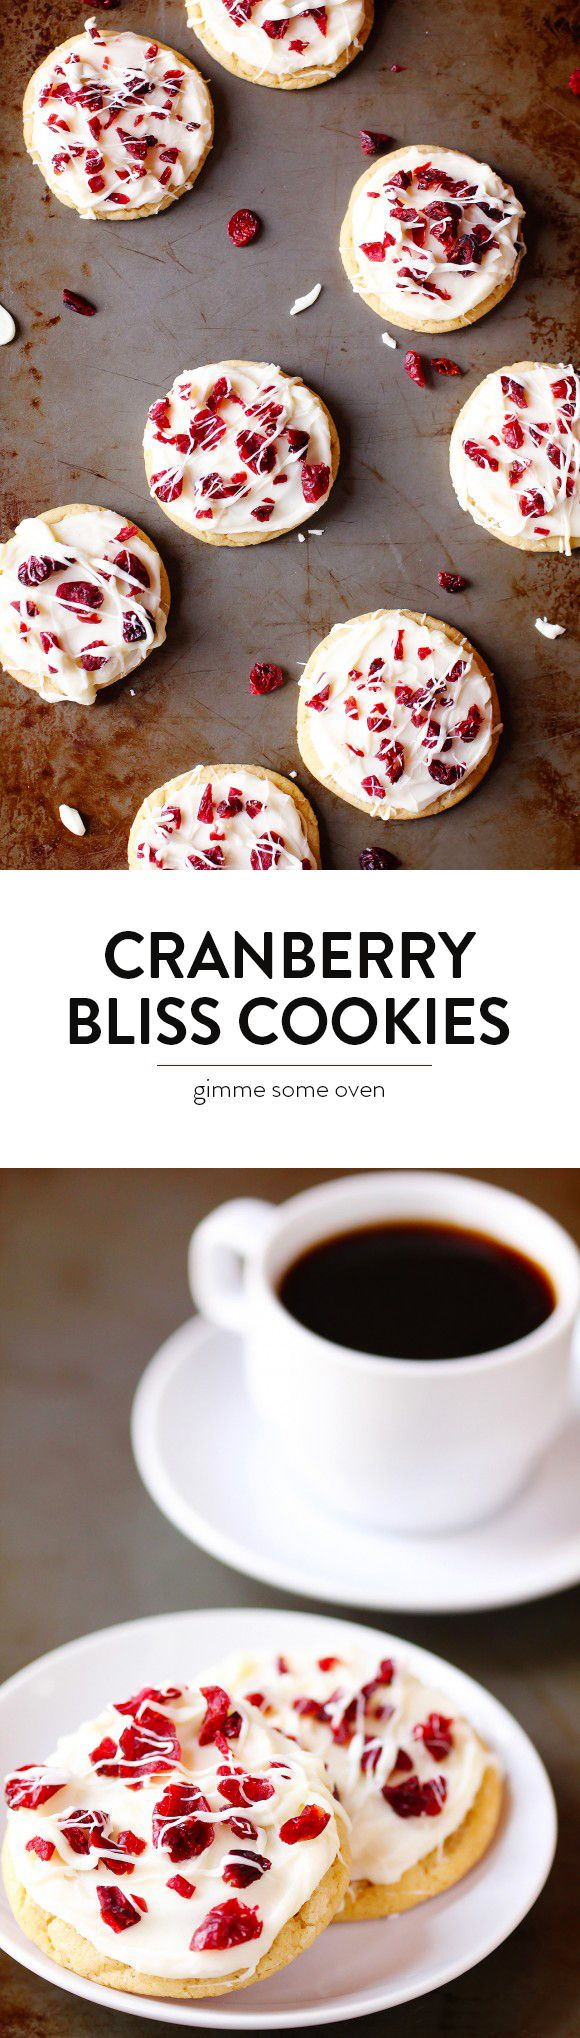 Cranberry Bliss Cookies -- delicious sugar cookies copped with cranberries and white chocolate and frosting, inspired by the popular cookies from Starbucks! | gimmesomeoven.com